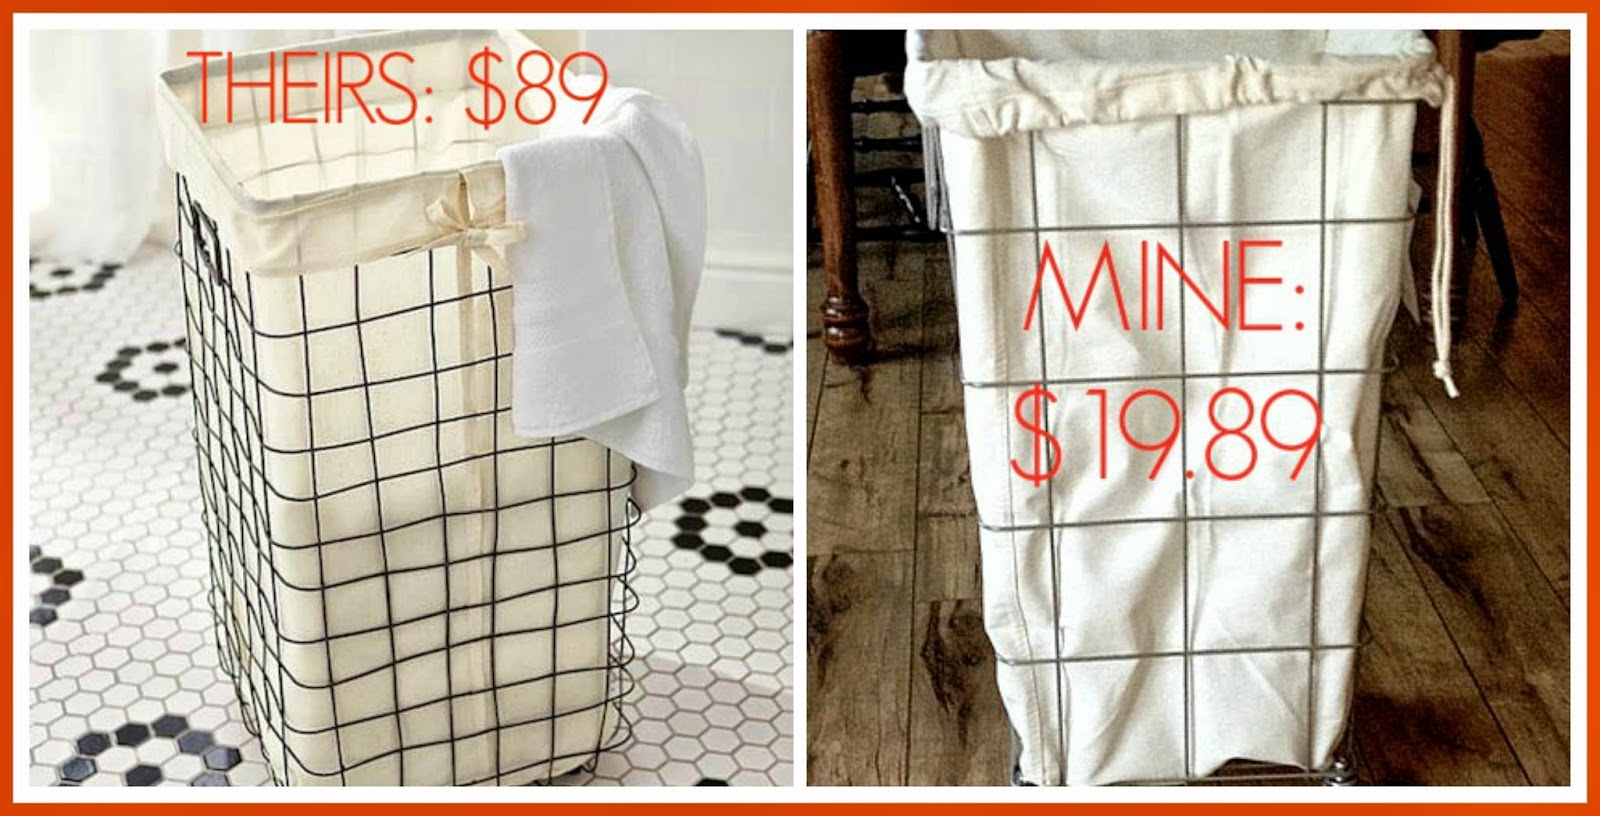 Our hopeful home french wire laundry hamper for less theirs 8900 mine 1989 solutioingenieria Image collections